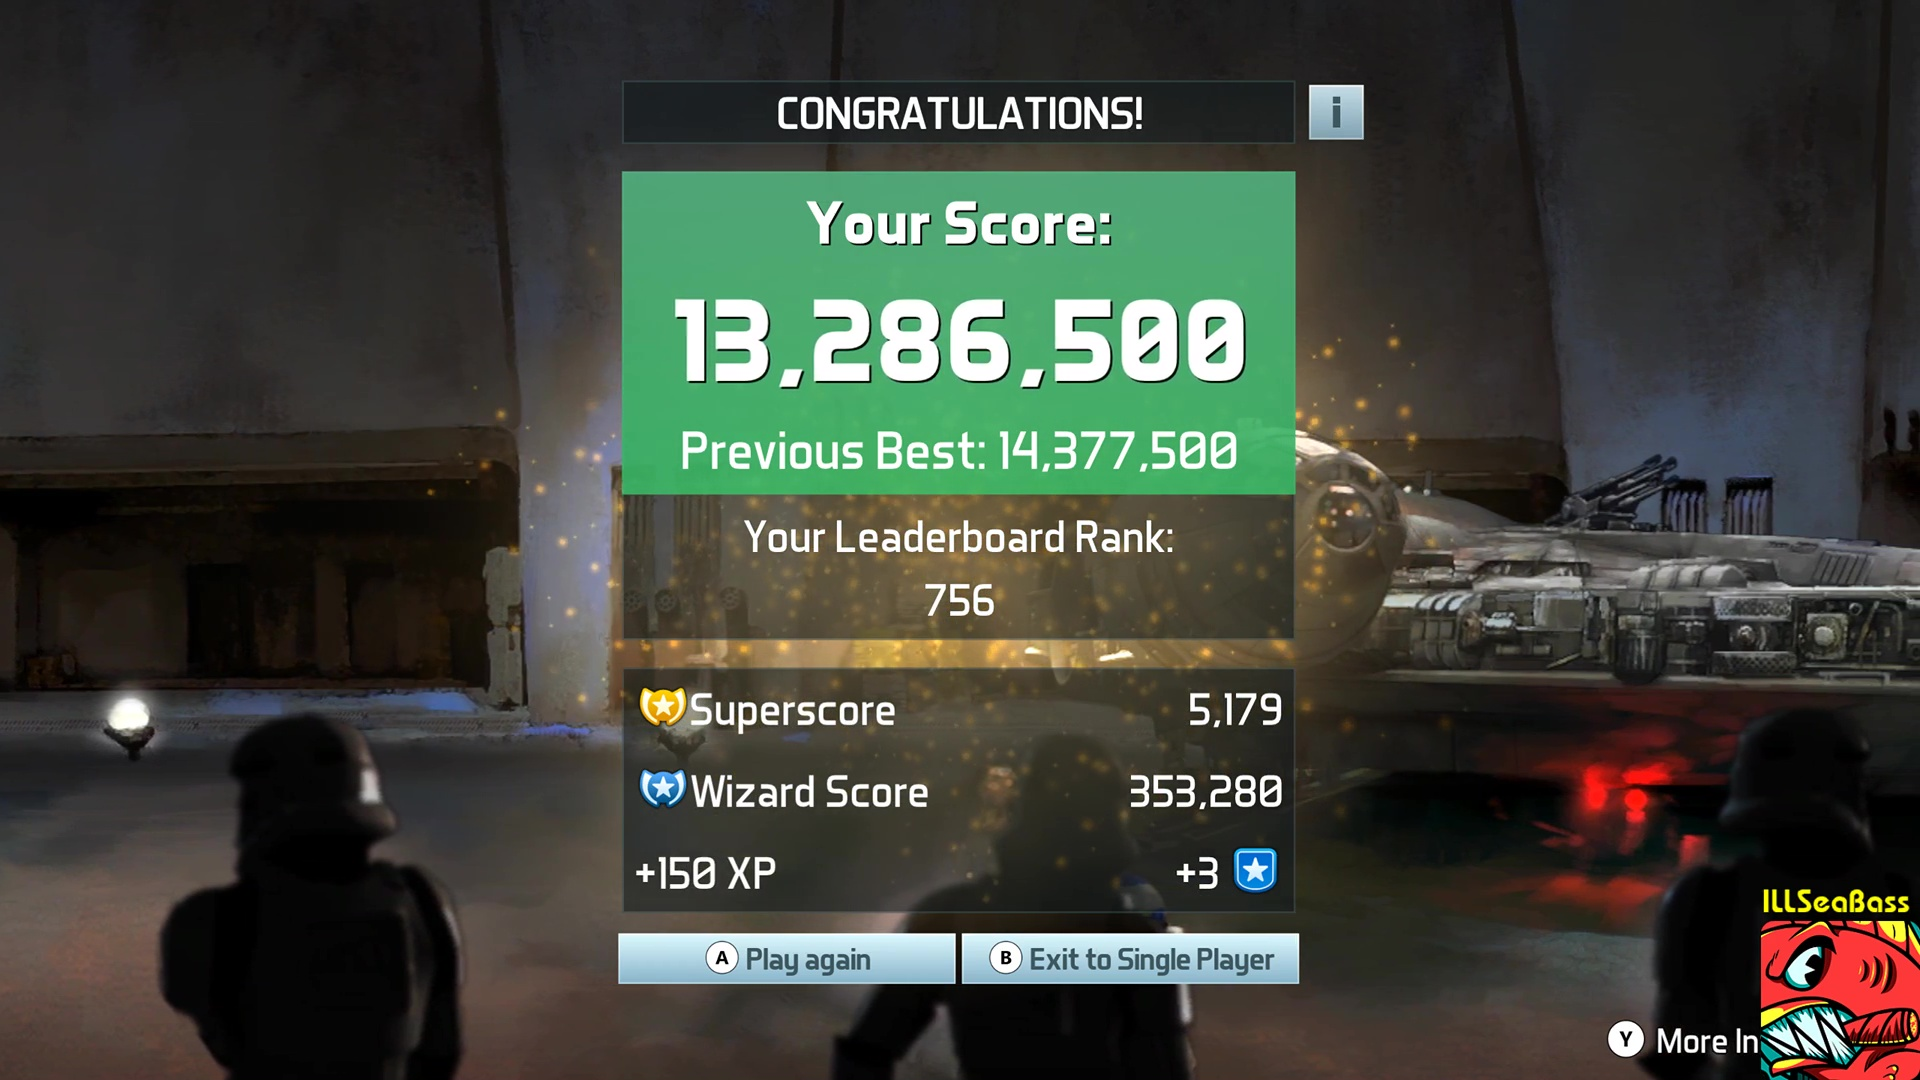 ILLSeaBass: Pinball FX3: Star Wars Pinball: Han Solo (PC) 13,286,500 points on 2017-11-05 20:02:25